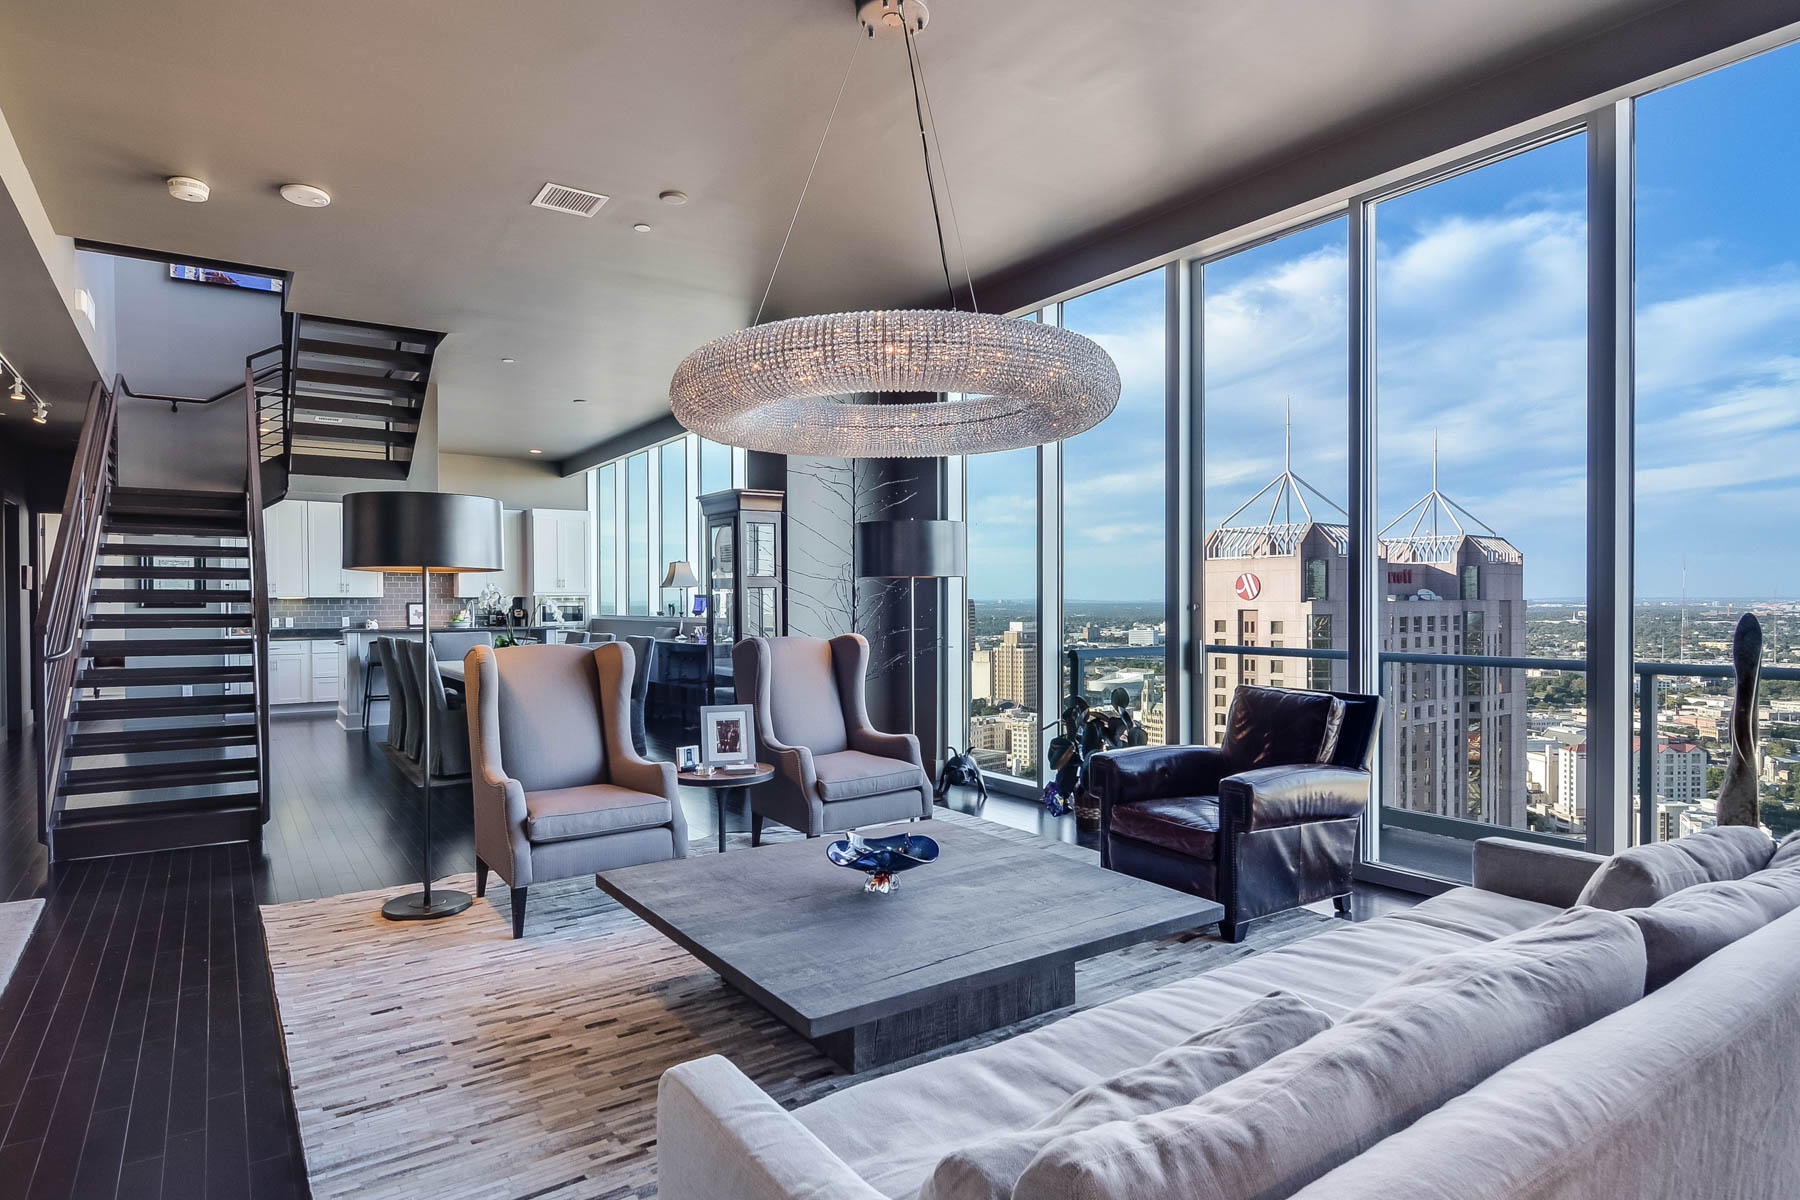 Copropriété pour l Vente à Flawless Penthouse with San Antonio Skyline Views 610 E Market St 3306 Alteza, San Antonio, Texas, 78205 États-Unis